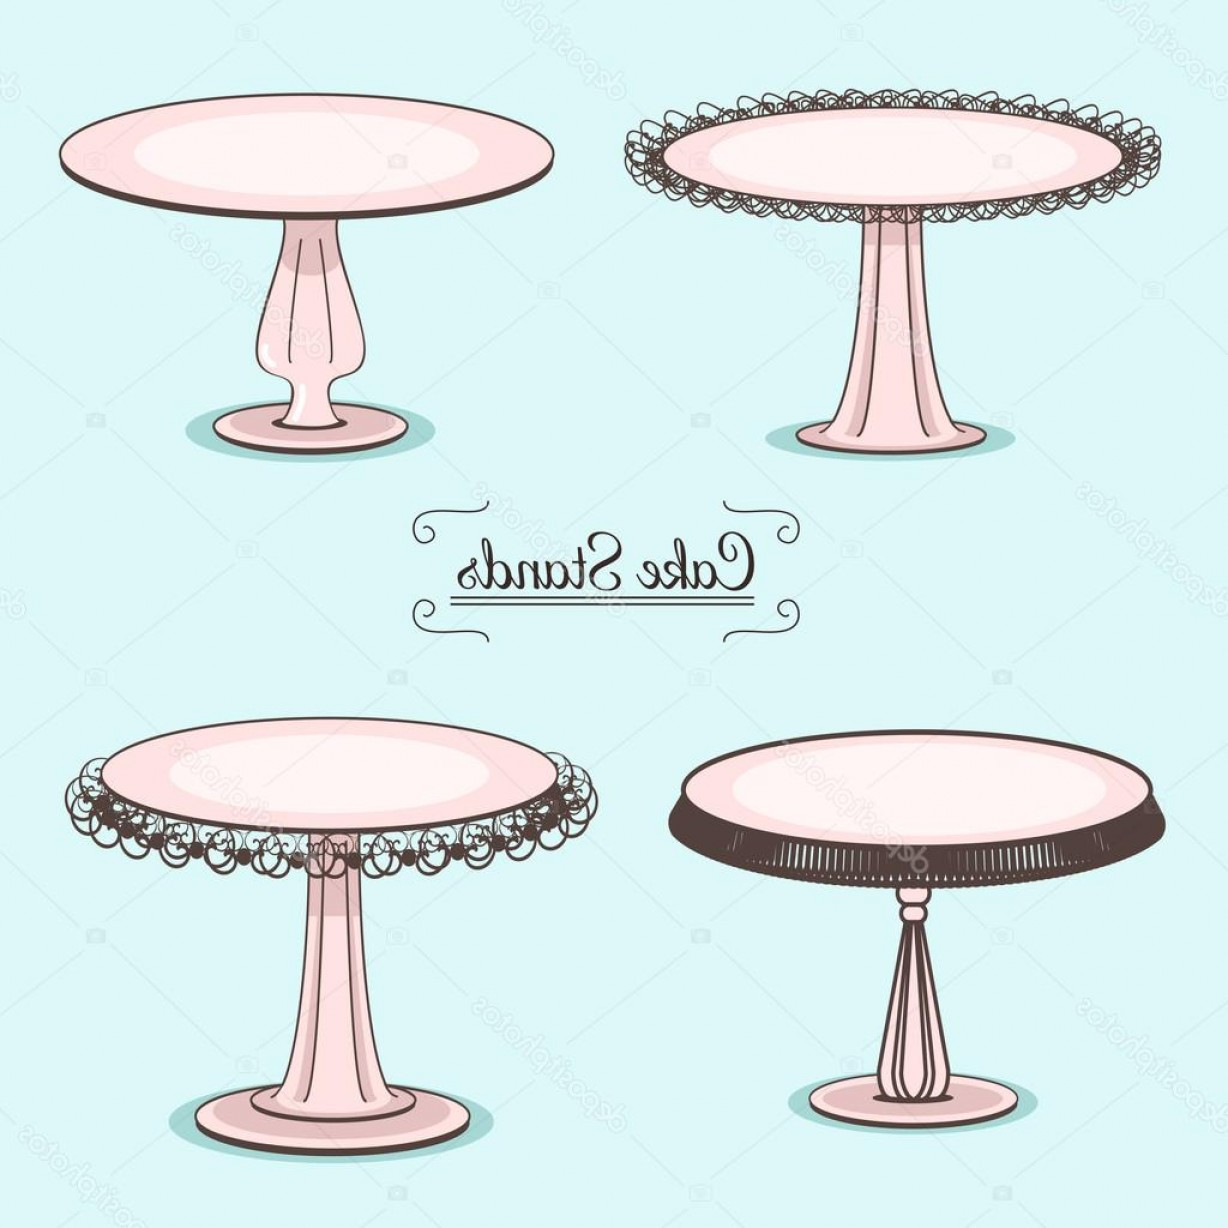 Cake Stand Vector: Stock Illustration Set Of Cake Stands